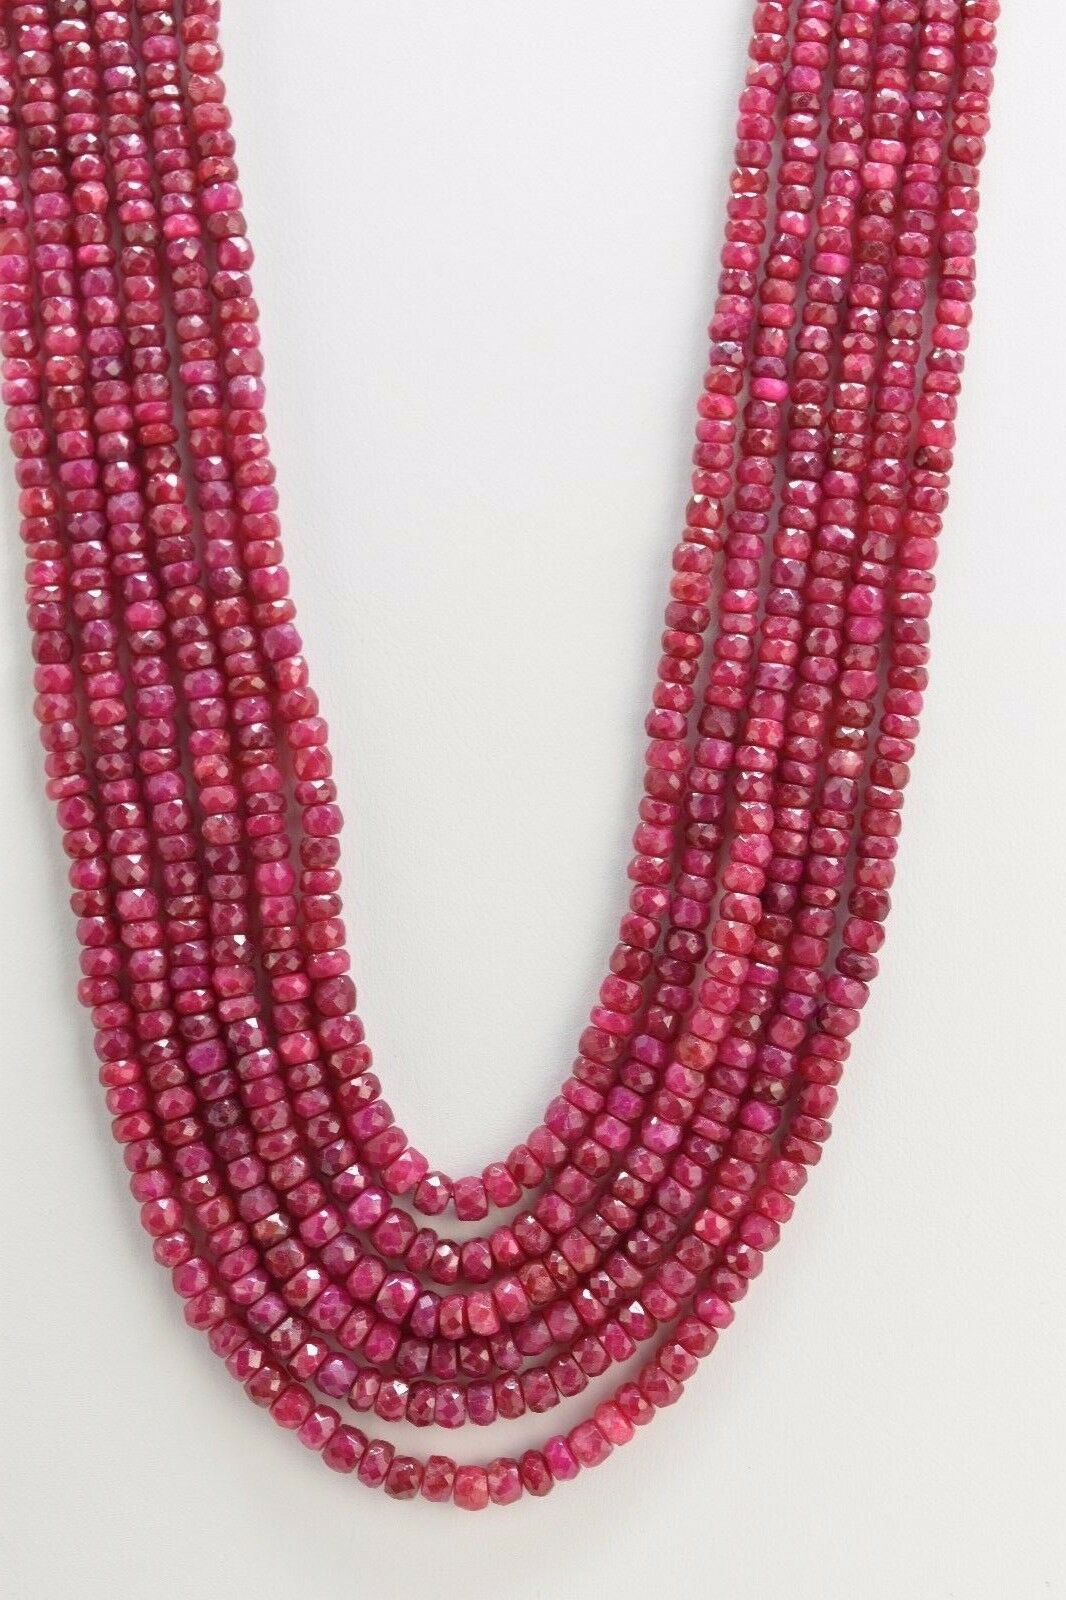 Natural Ruby Micro Faceted Rondelle Beads 3.2 - 4.5 mm, AA Quality